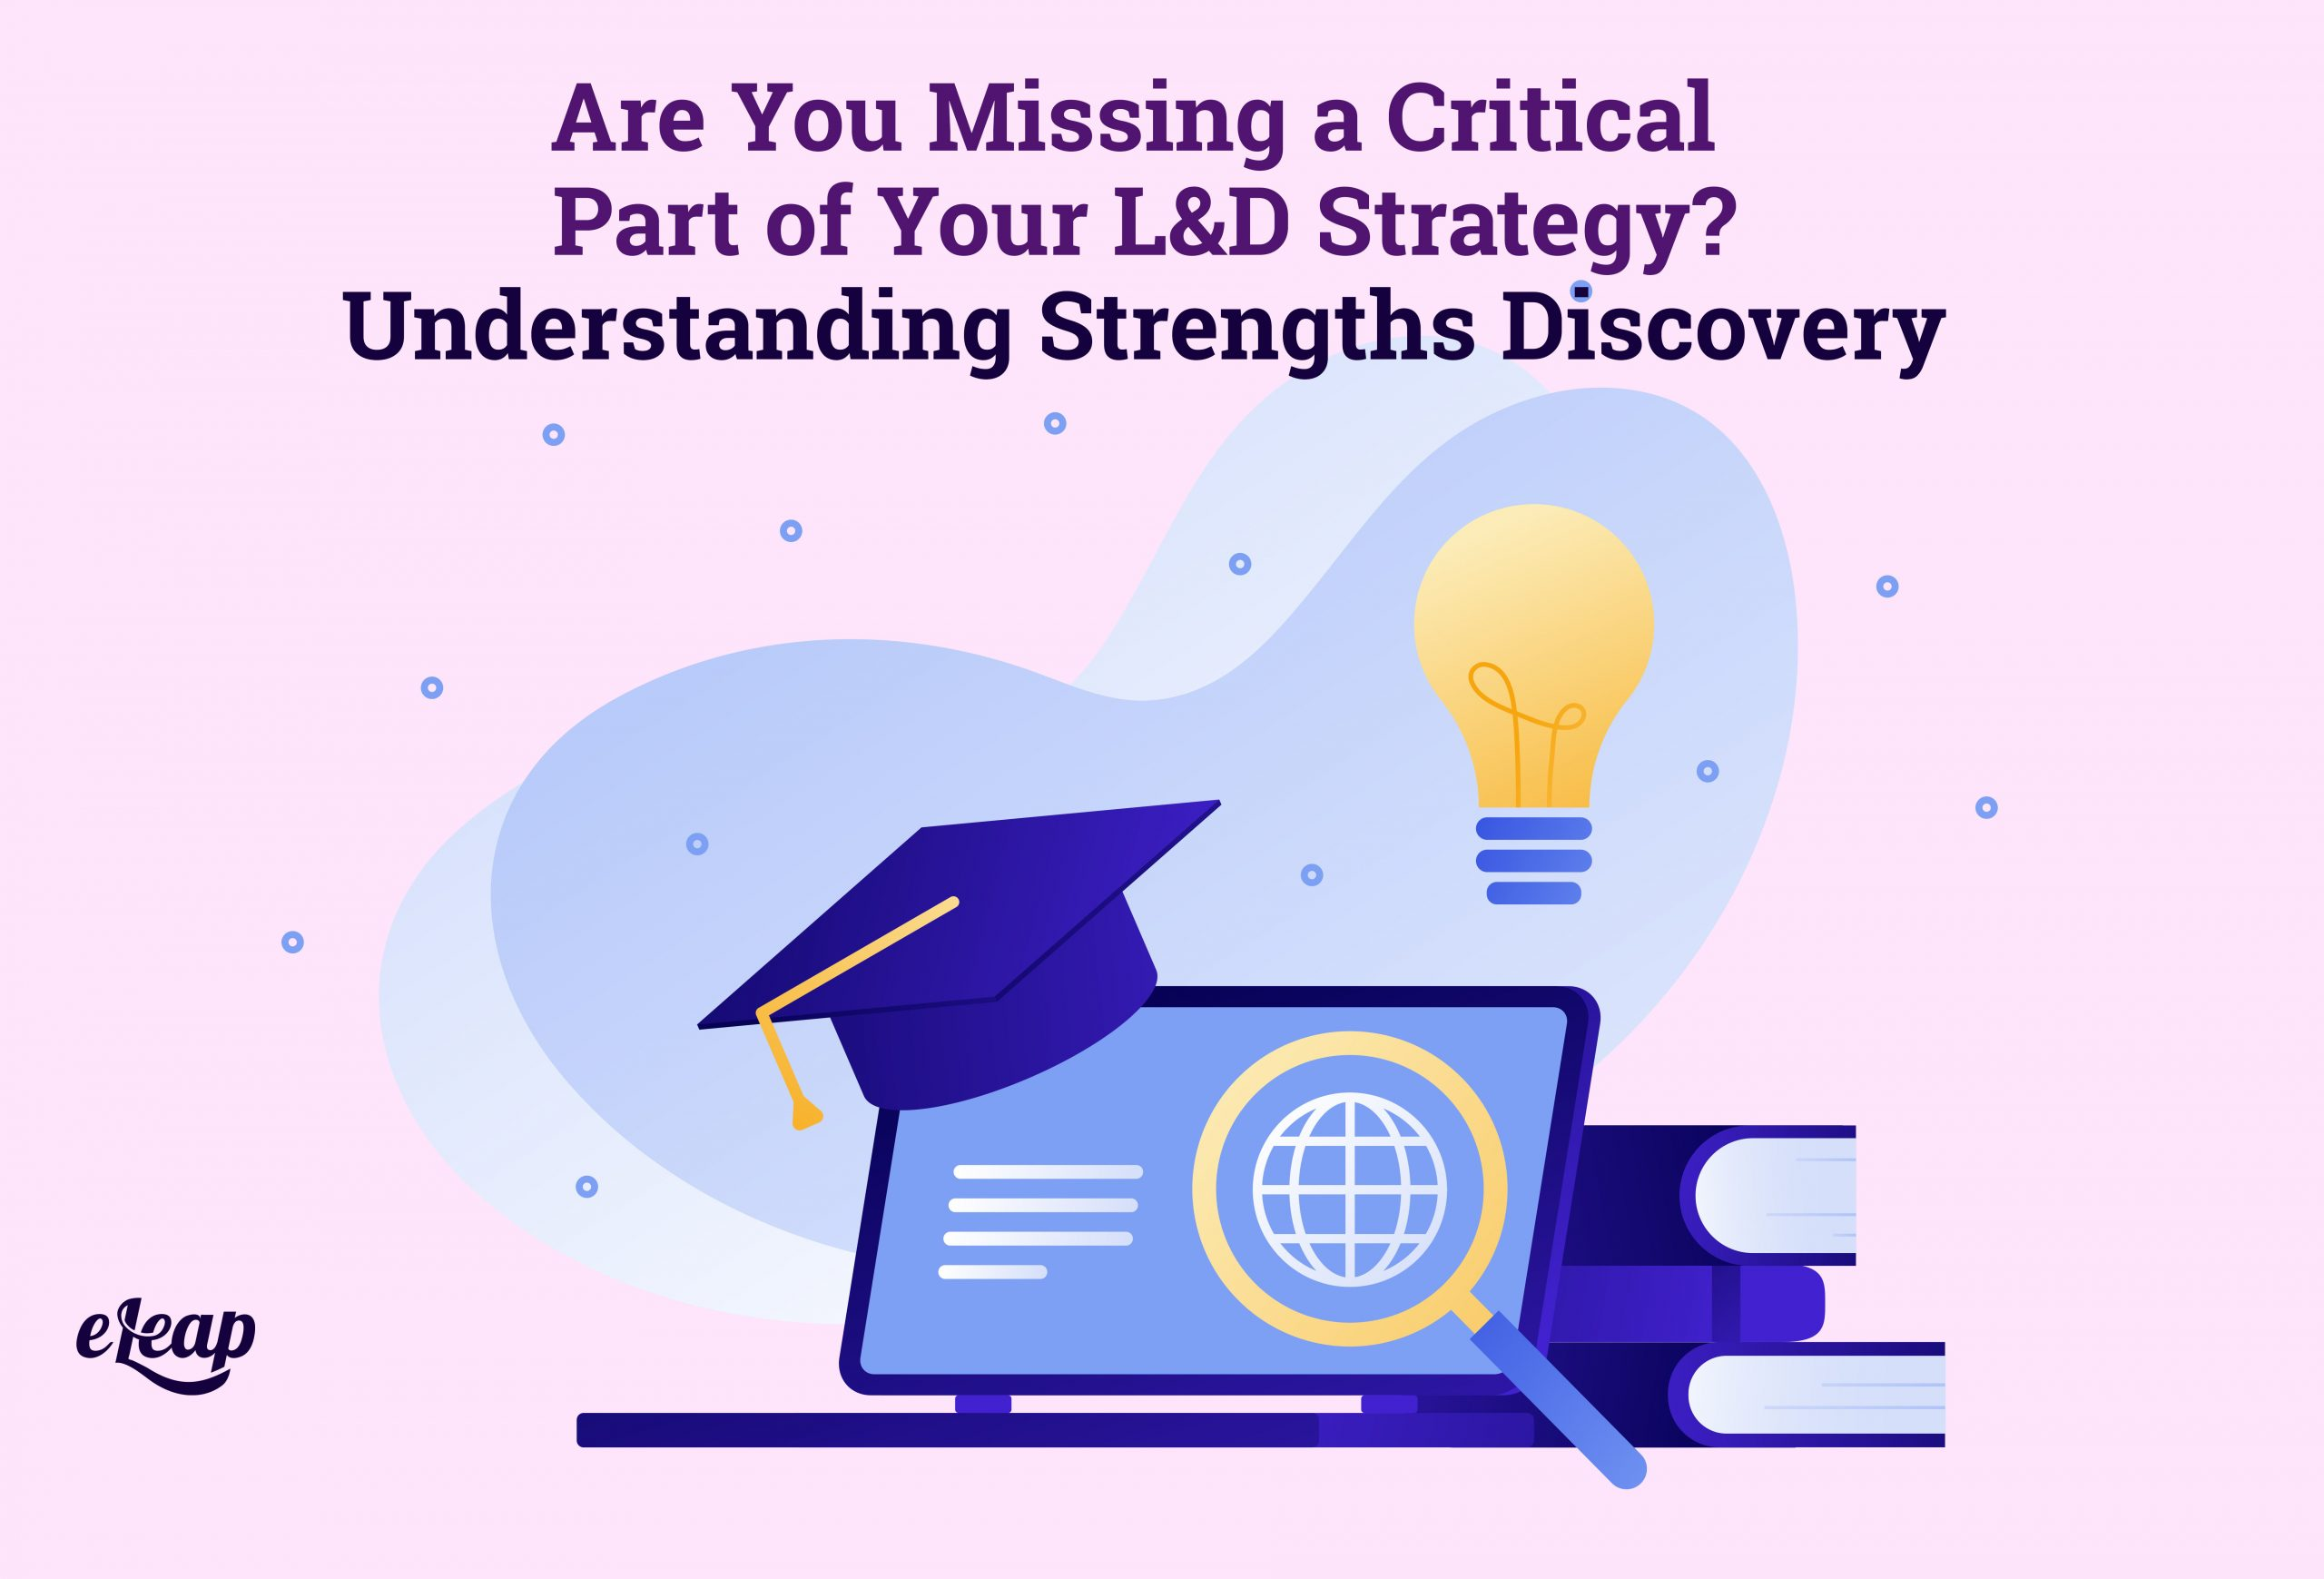 Are You Missing a Critical Part of Your L&D Strategy? Understanding Strengths Discovery